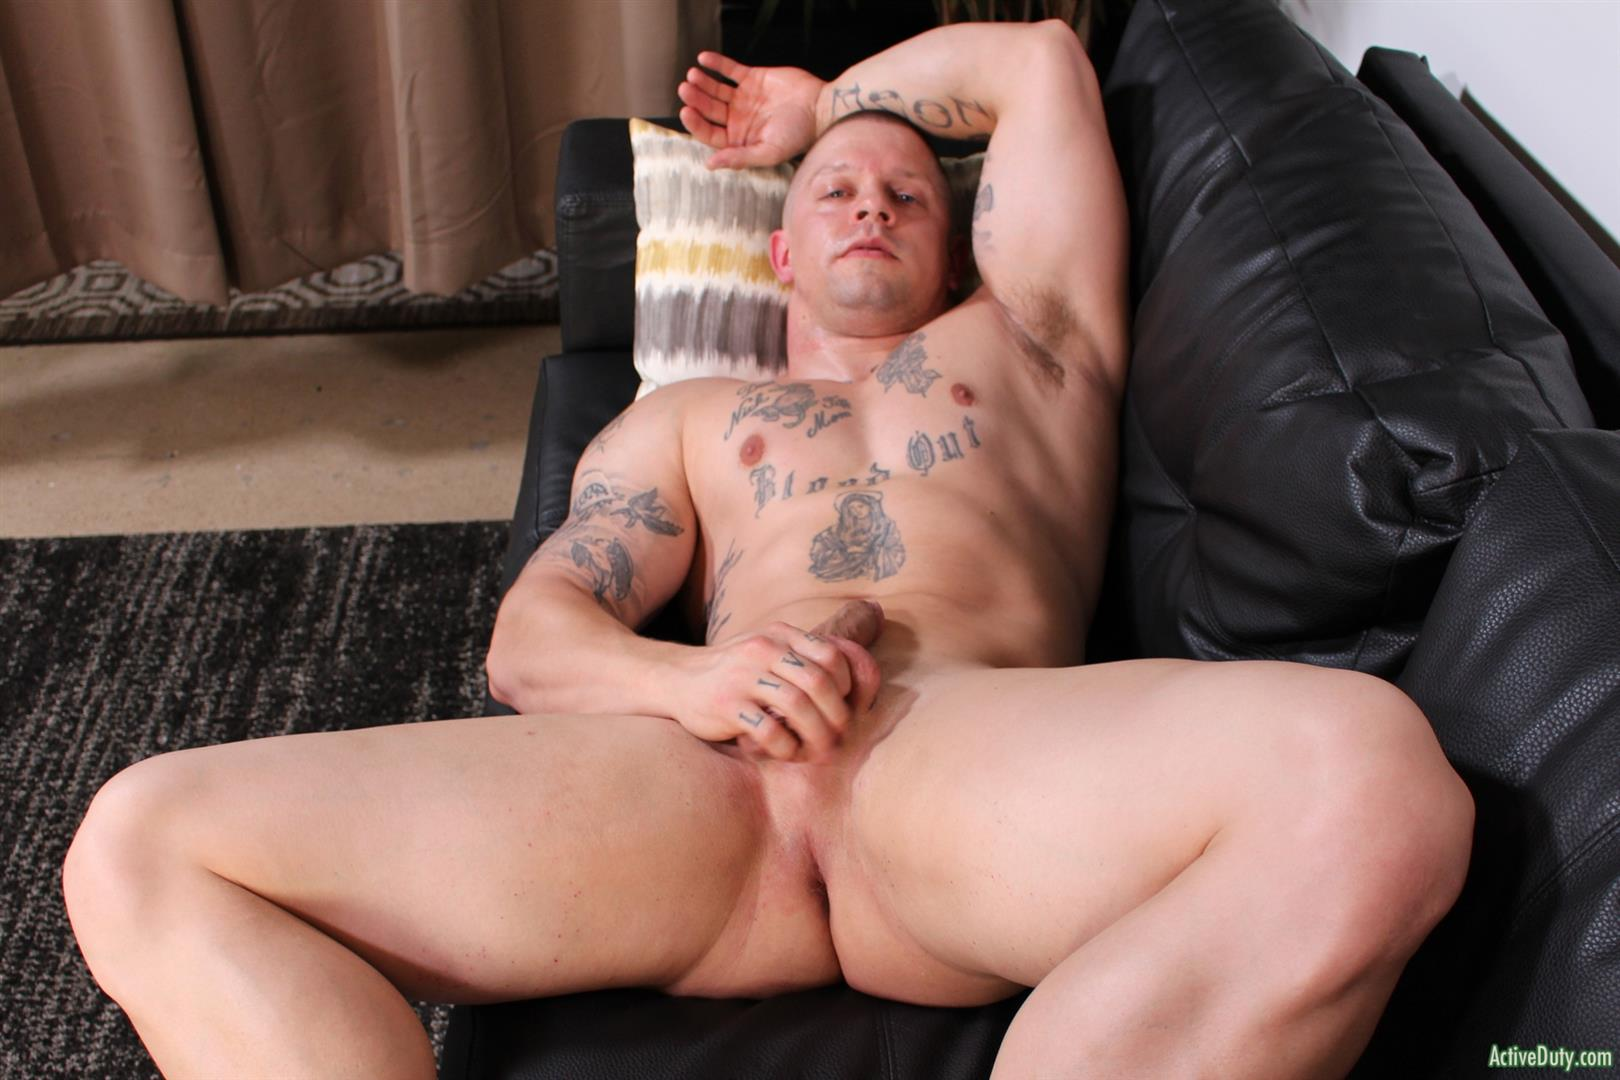 Active-Duty-Owen-Steal-Naked-Muscular-Marine-Jerking-Off-Big-Cock-12 Naked Hung Muscular Marine Jerks His Big Hard Cock